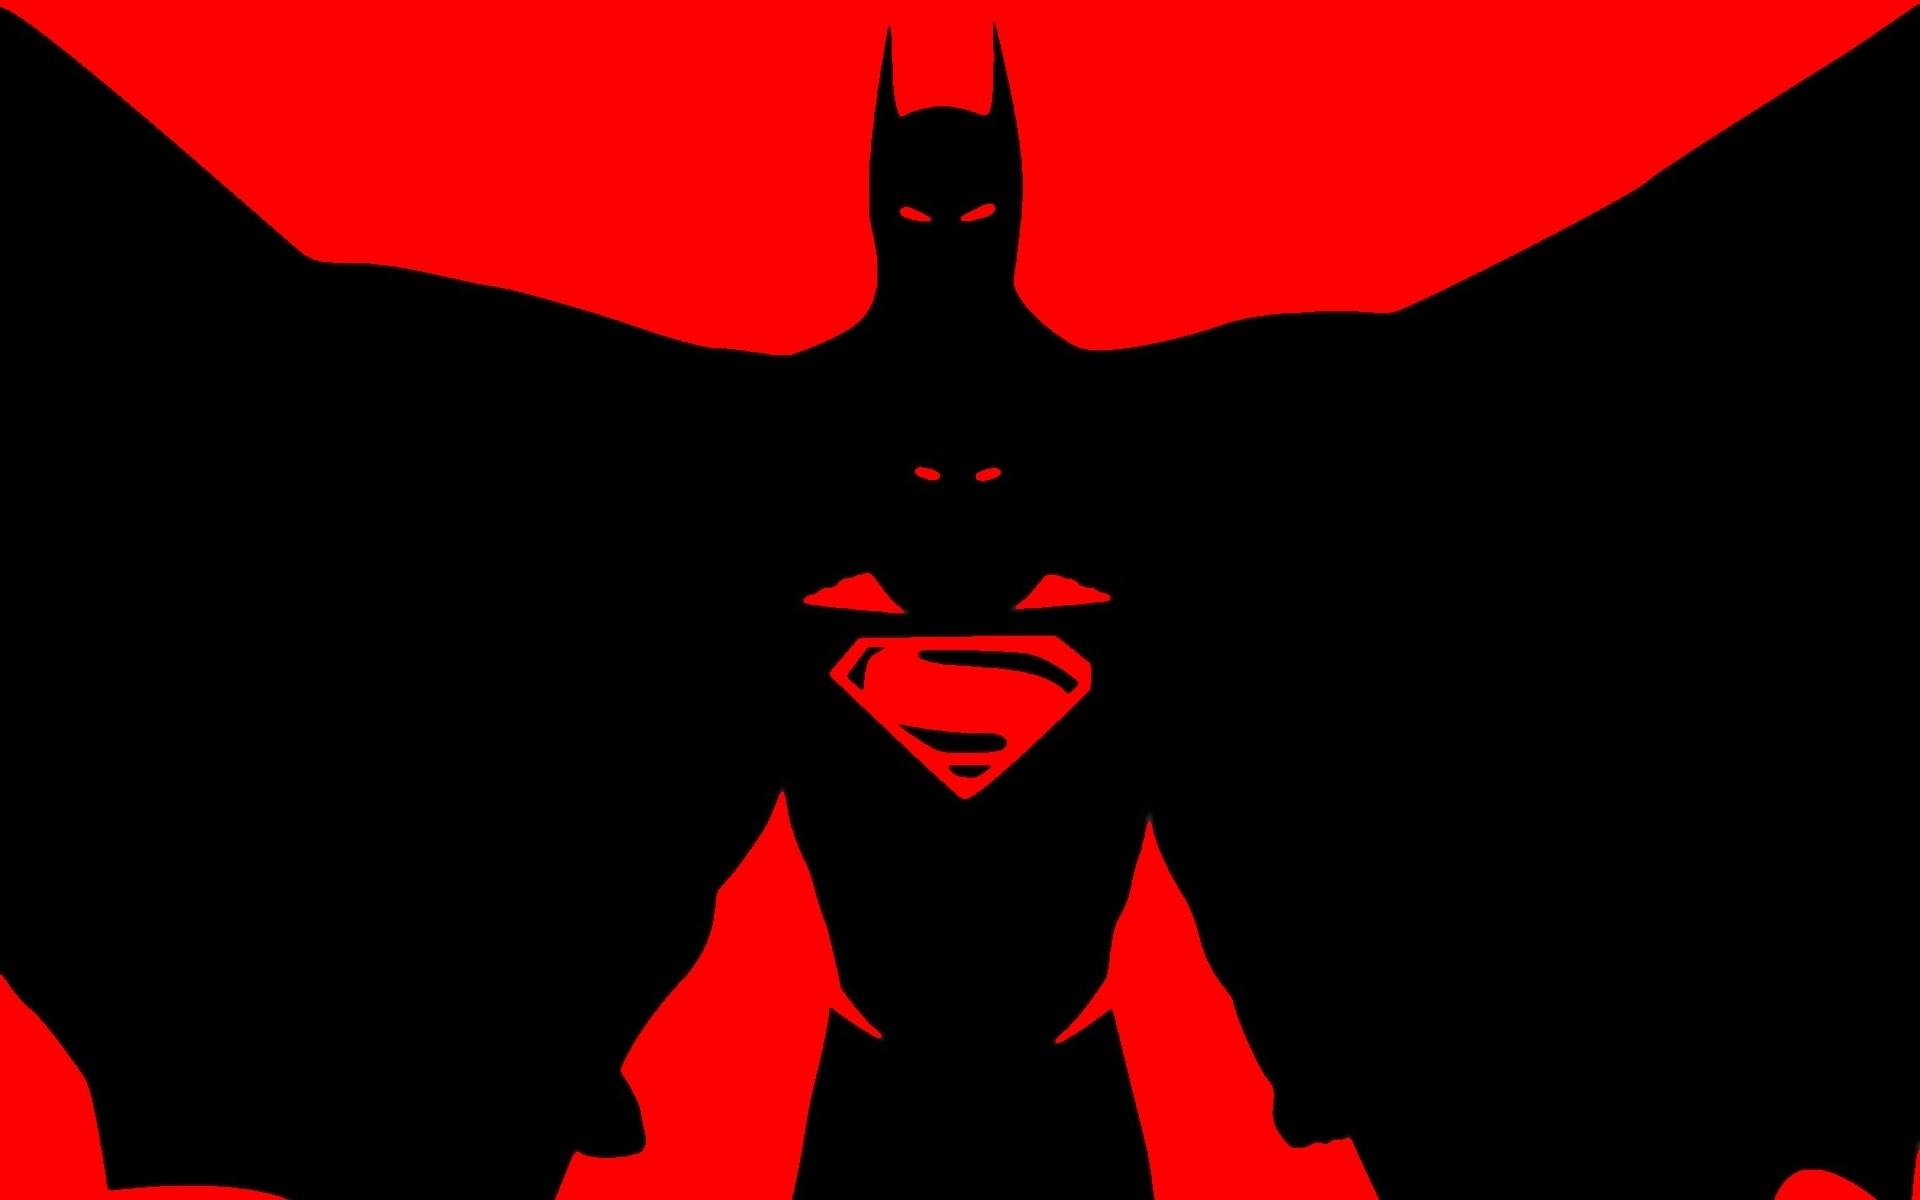 Superman Wallpapers Free Download 1600×1200 Superman Image Wallpapers (41  Wallpapers) | Adorable